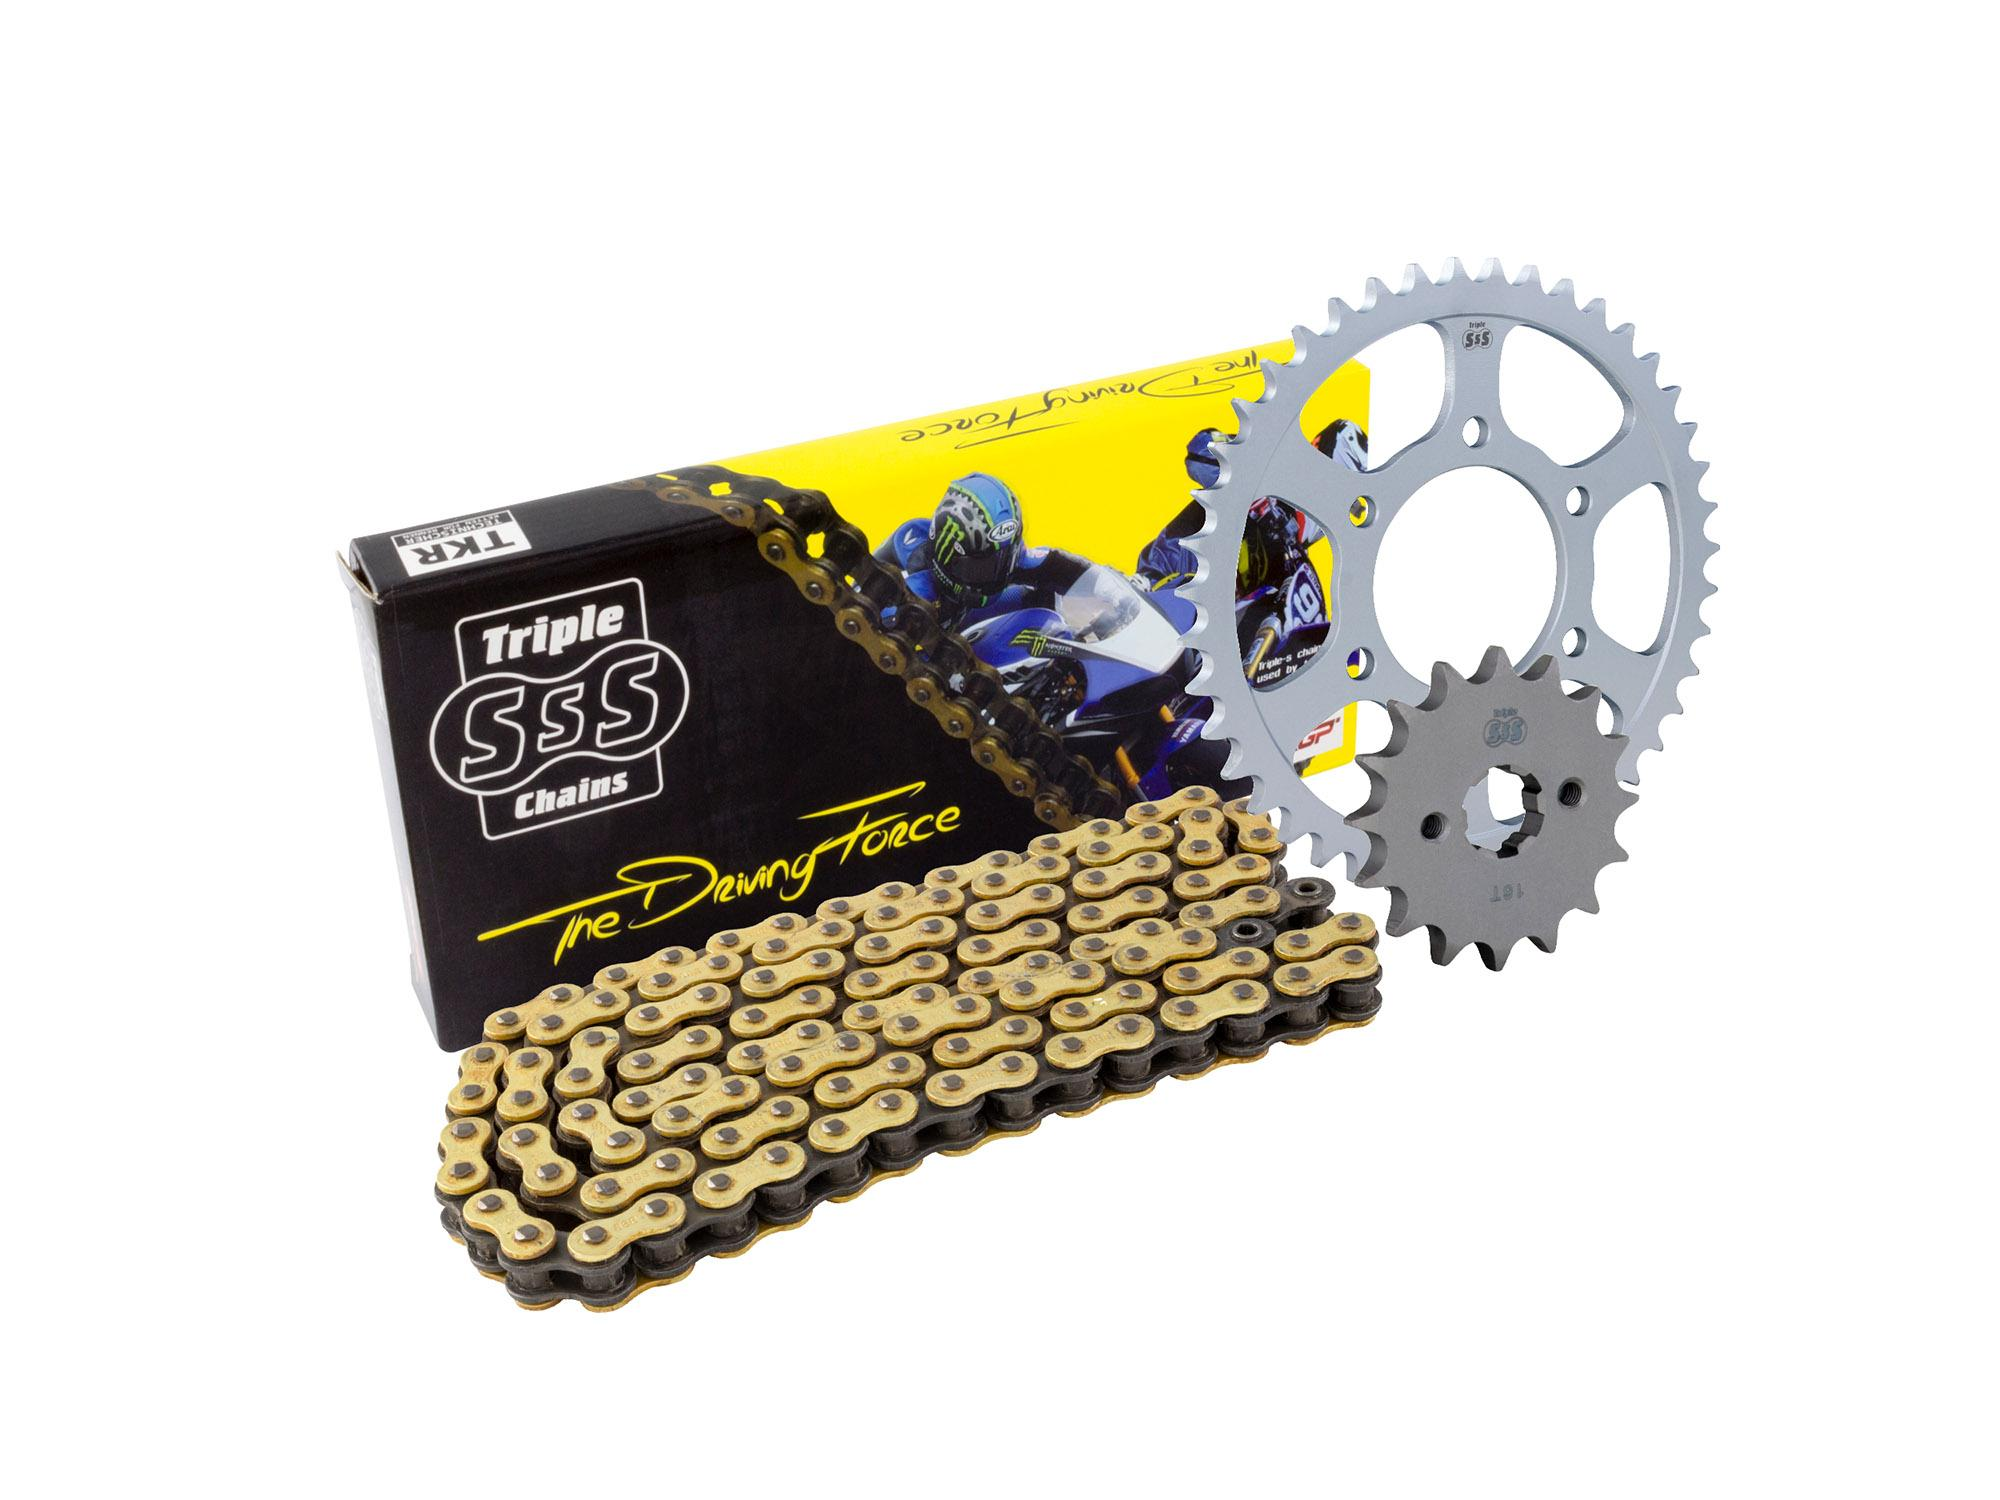 Kawasaki Z1000 B7F-B9F 07-09 Chain & Sprocket Kit: 15T Front, 40T Rear, HD O-Ring Gold Chain 525H 110Link